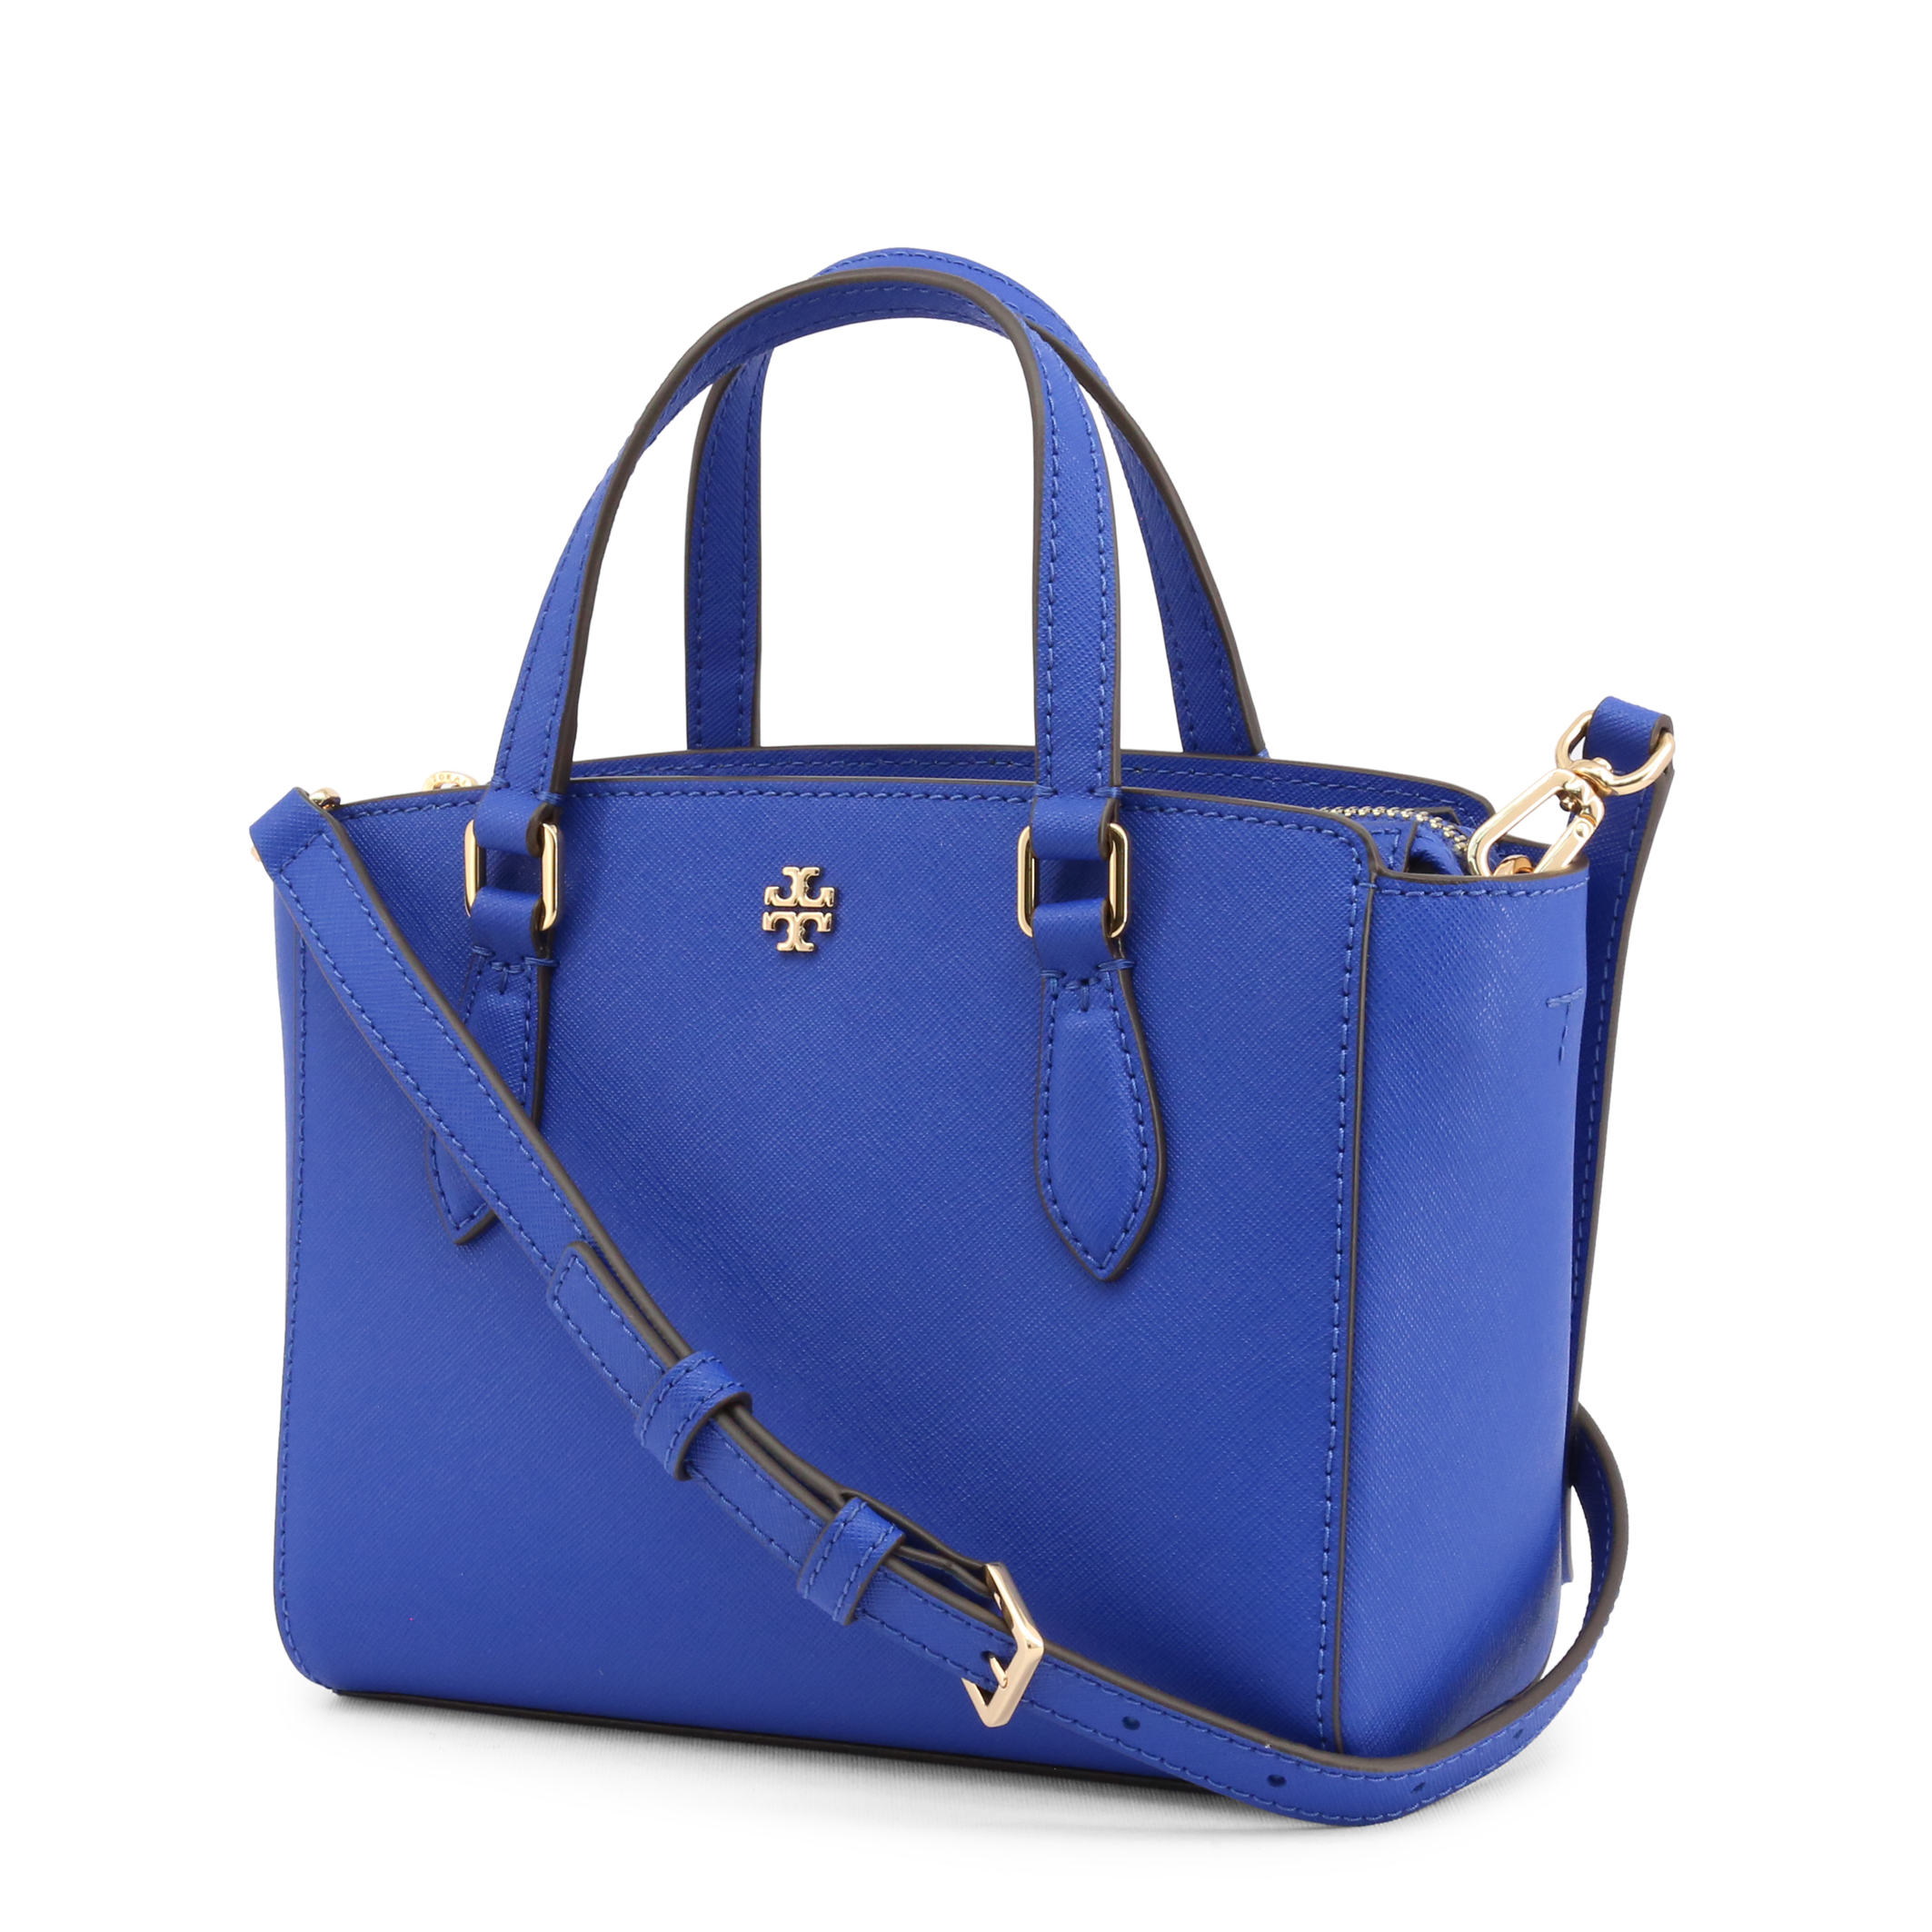 Tory Burch - 64189 | You Fashion Outlet